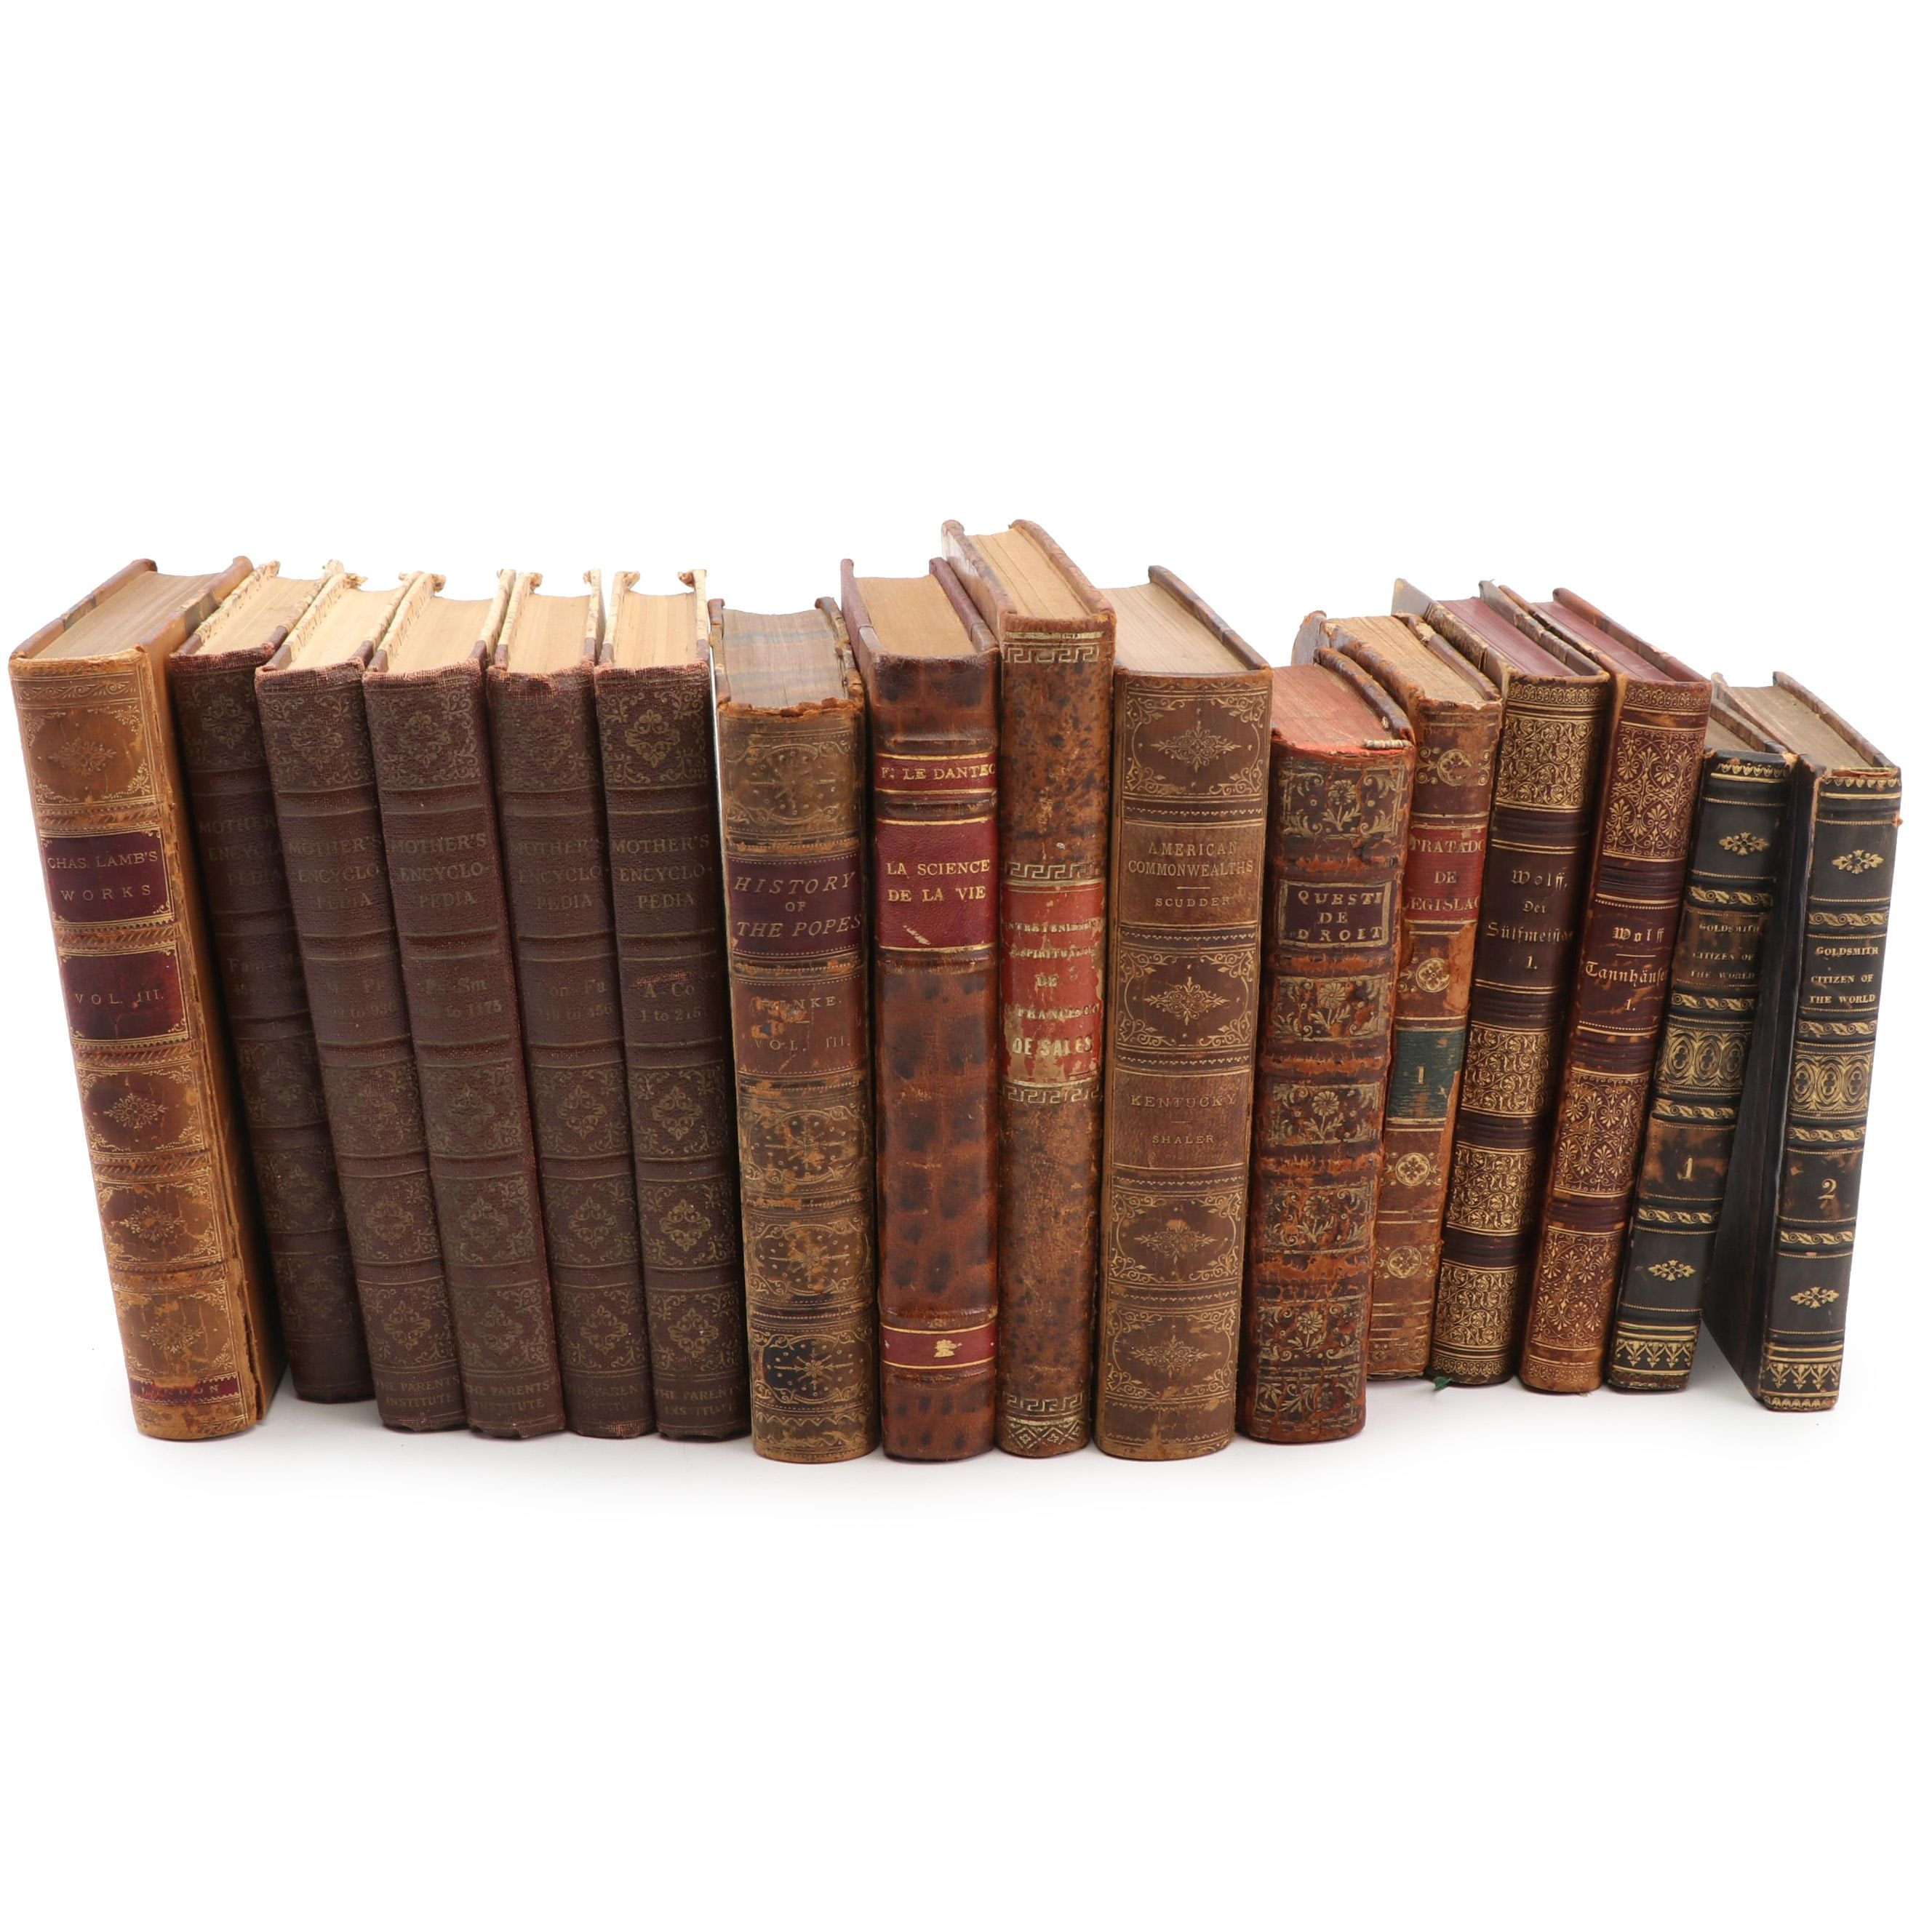 Vintage and Antiquarian Collection of Books in English, French, Spanish & German